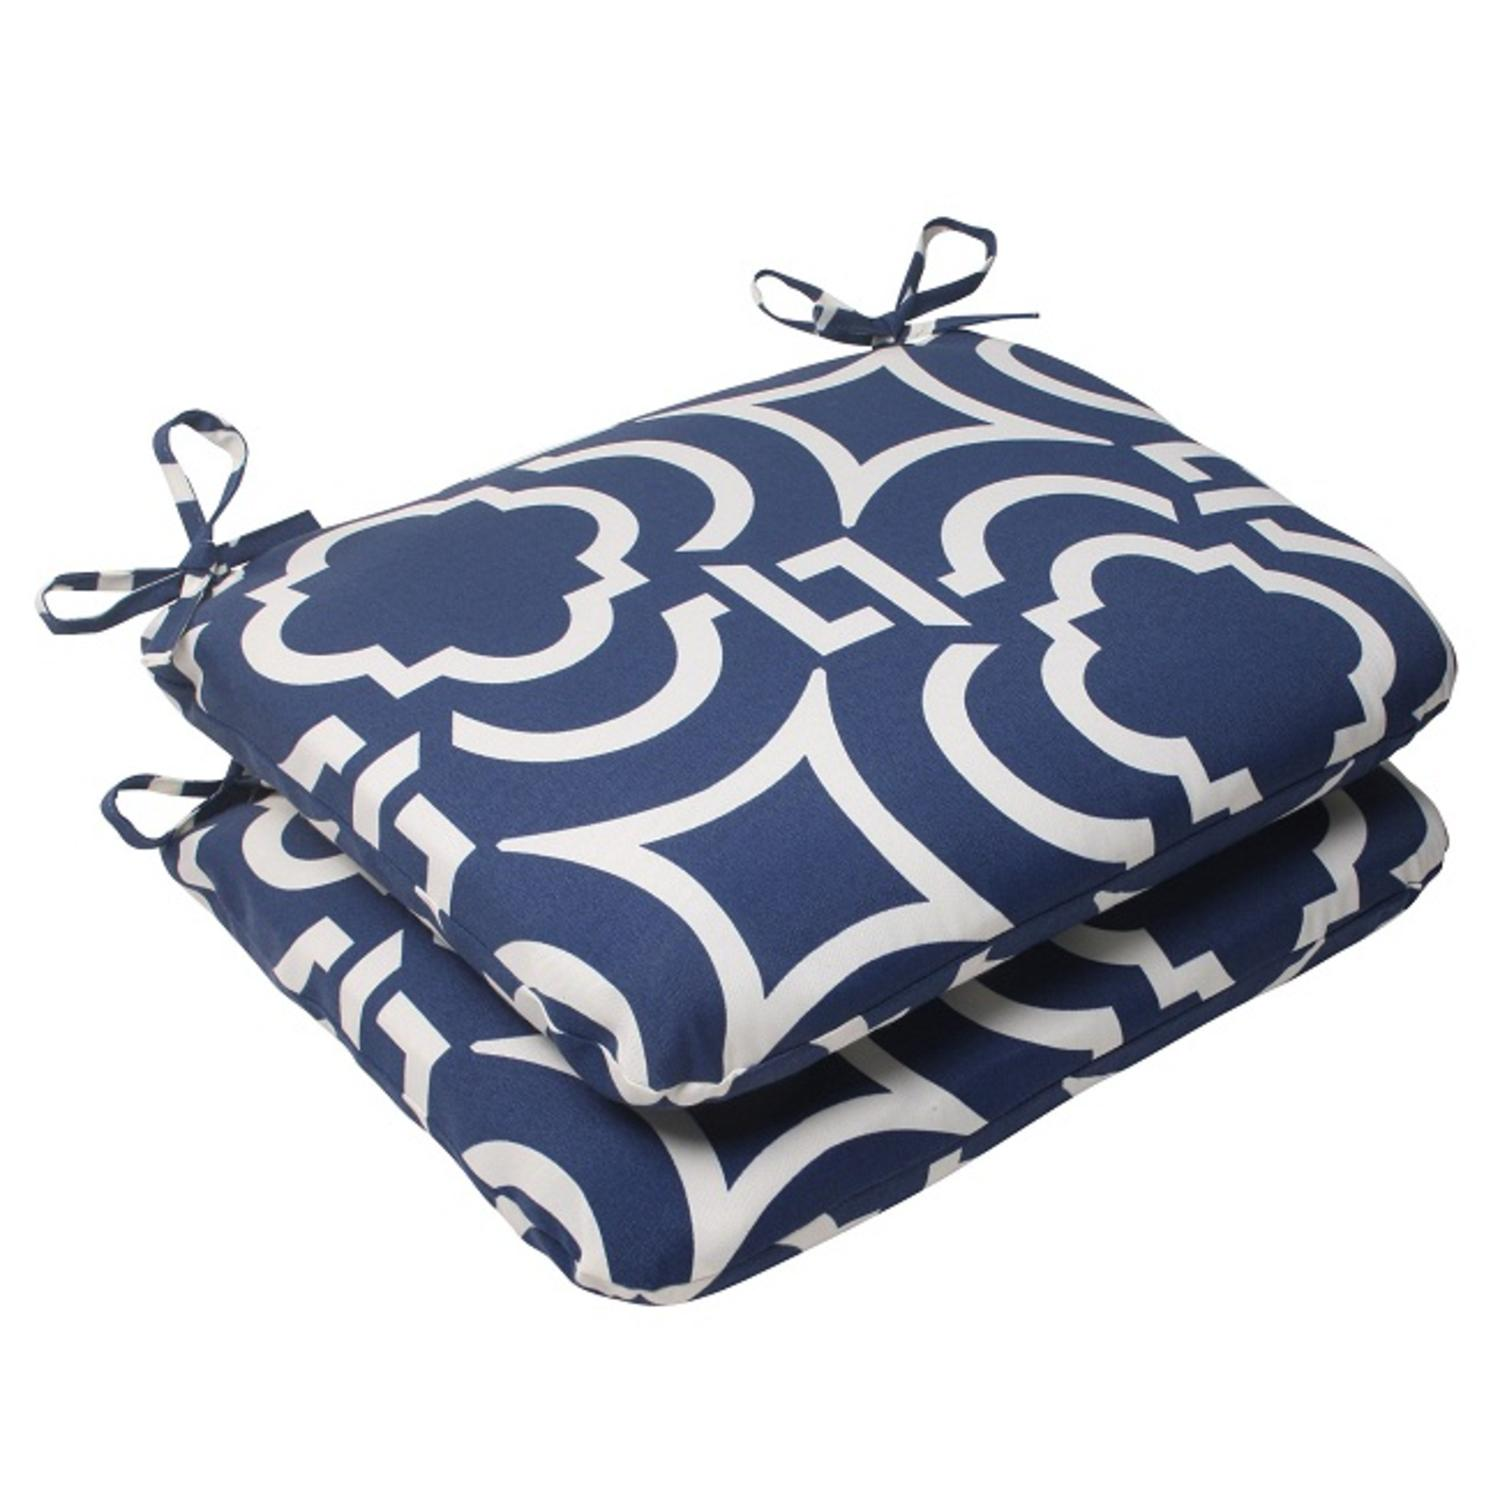 Set of 2 Geometric Navy Blue Sky Outdoor Rounded Patio Seat Cushions 18.5""